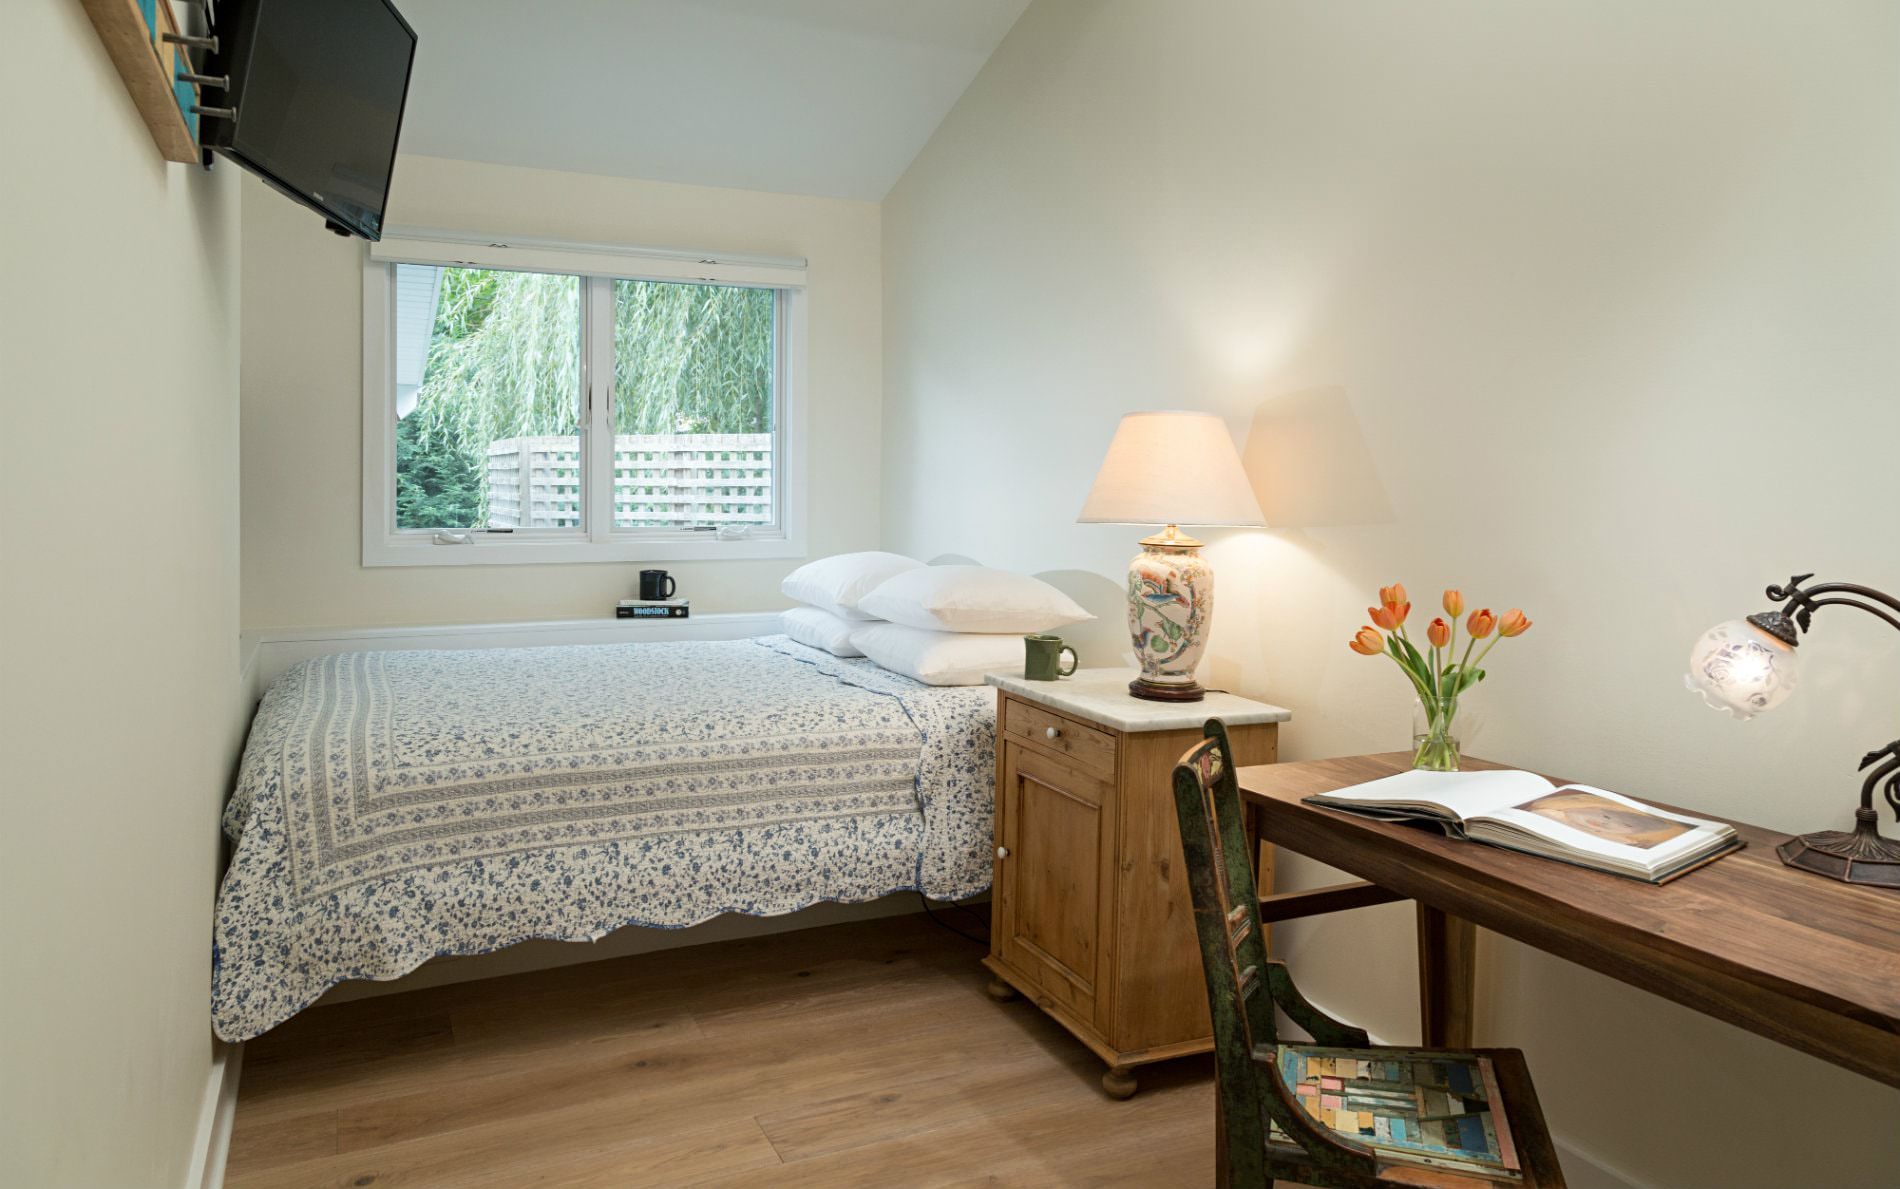 White vaulted room with double window, wood floor, bed with nightstand and lamp, and writing desk with lamp and chair